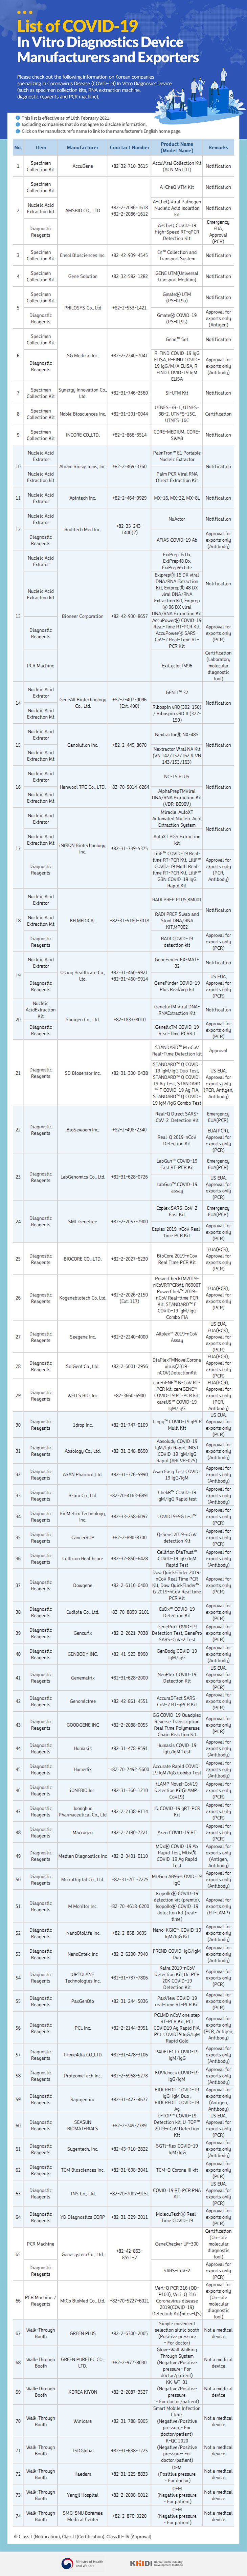 List of COVID-19 In Vitro Diagnostics Device Manufacturers and Exporters